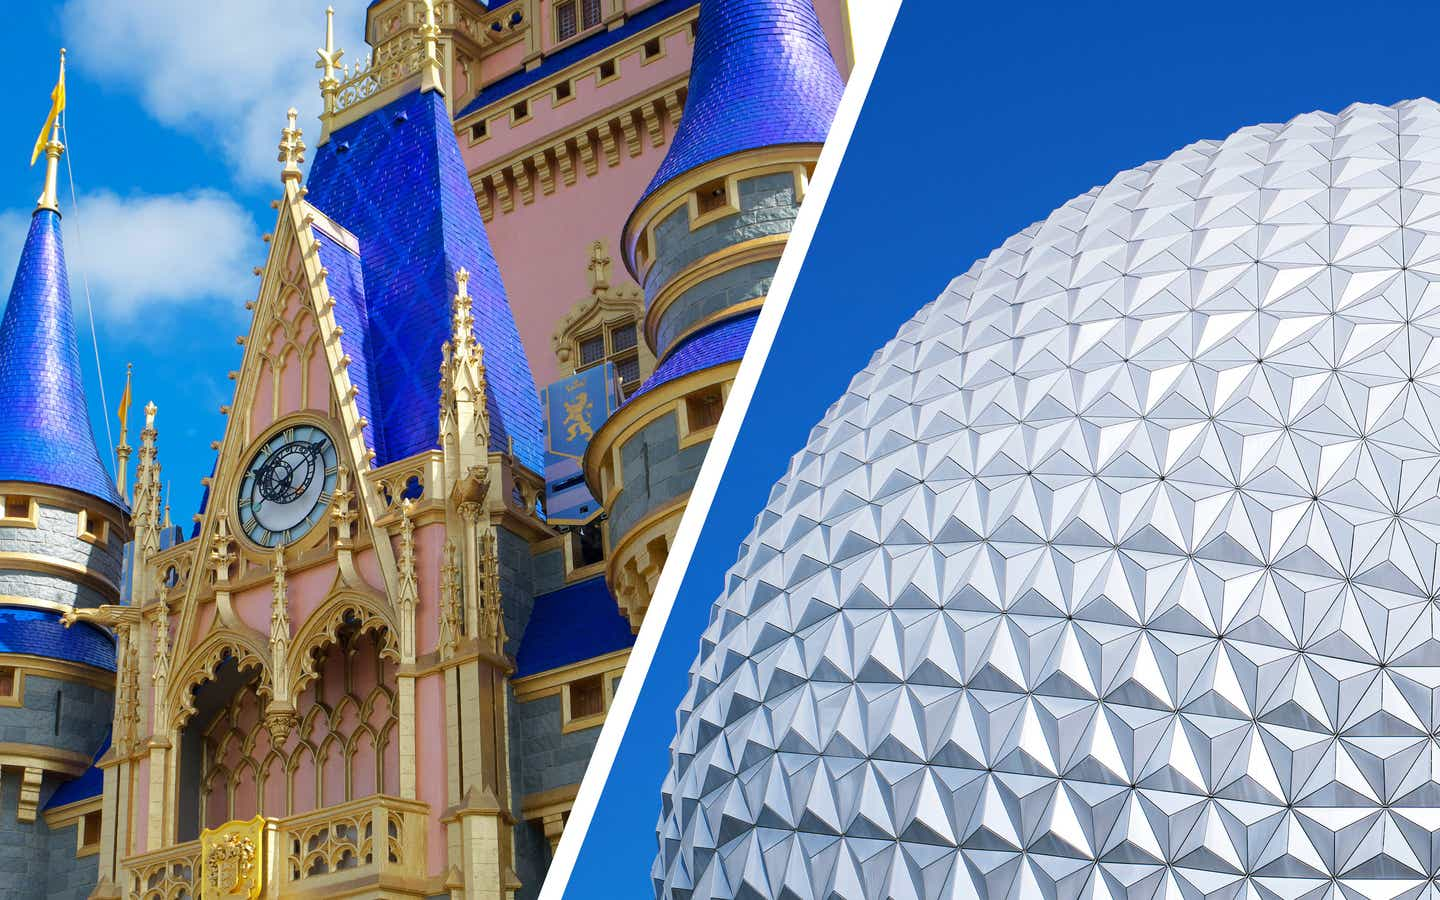 Left: Cinderella's Castle at Magic Kingdom. Right: Spaceship Earth at EPCOT.